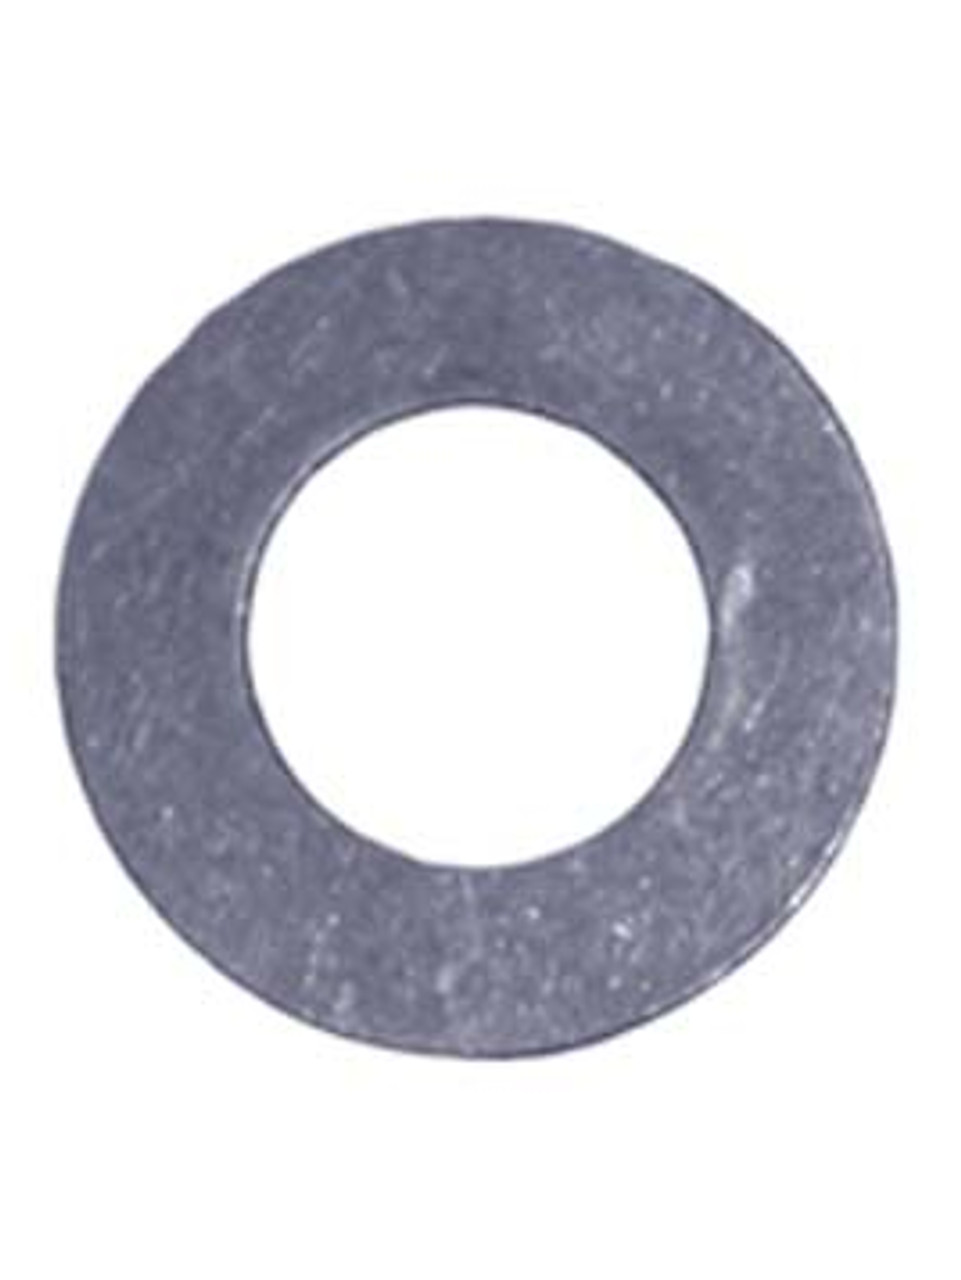 AW-34 --- Axle Washer 3/4""